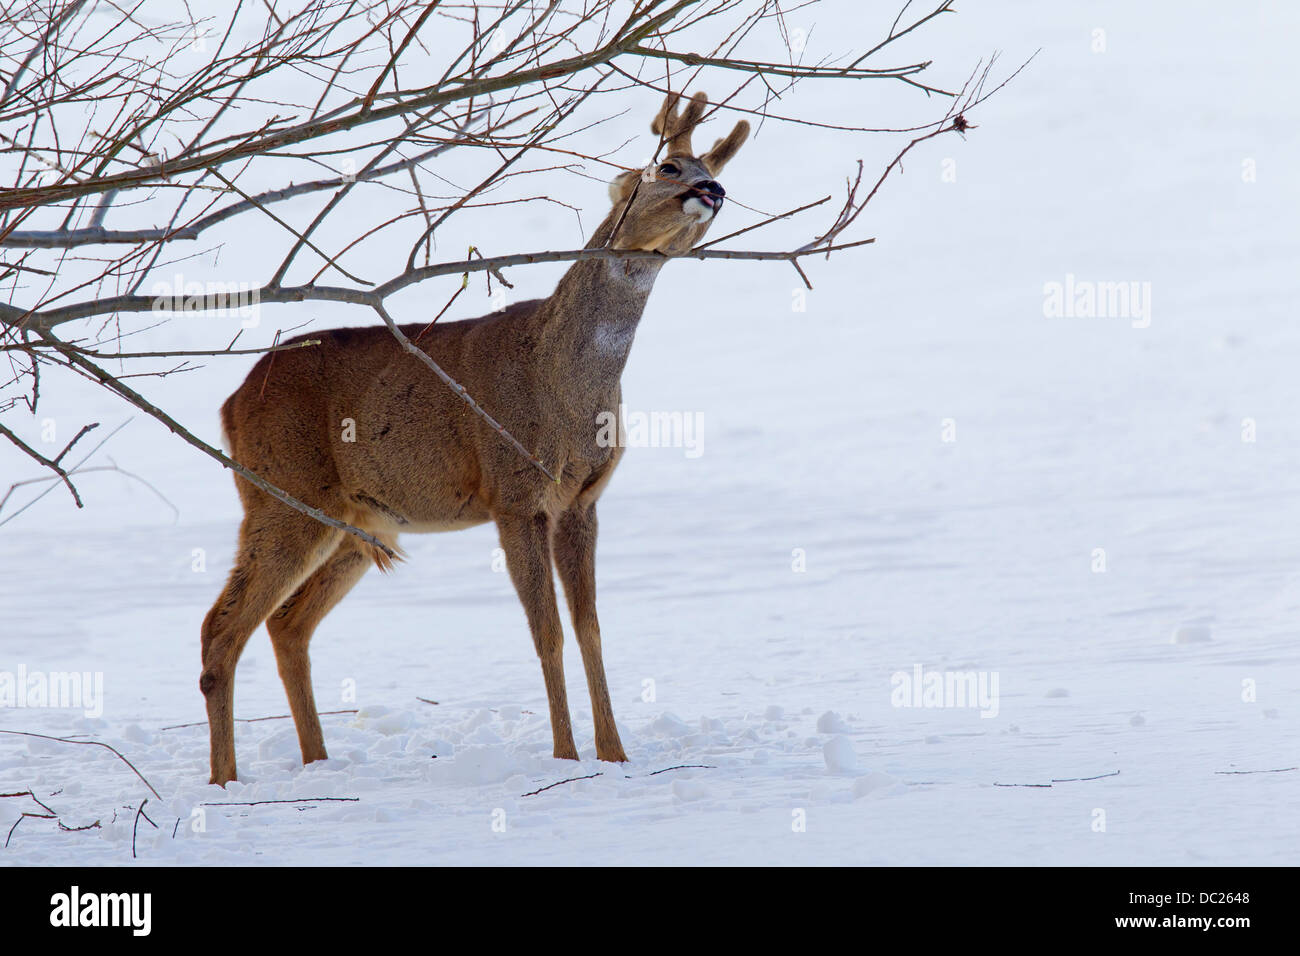 Roe deer (Capreolus capreolus), roebuck / buck feeding on bark from twigs from shrub in the snow in winter - Stock Image